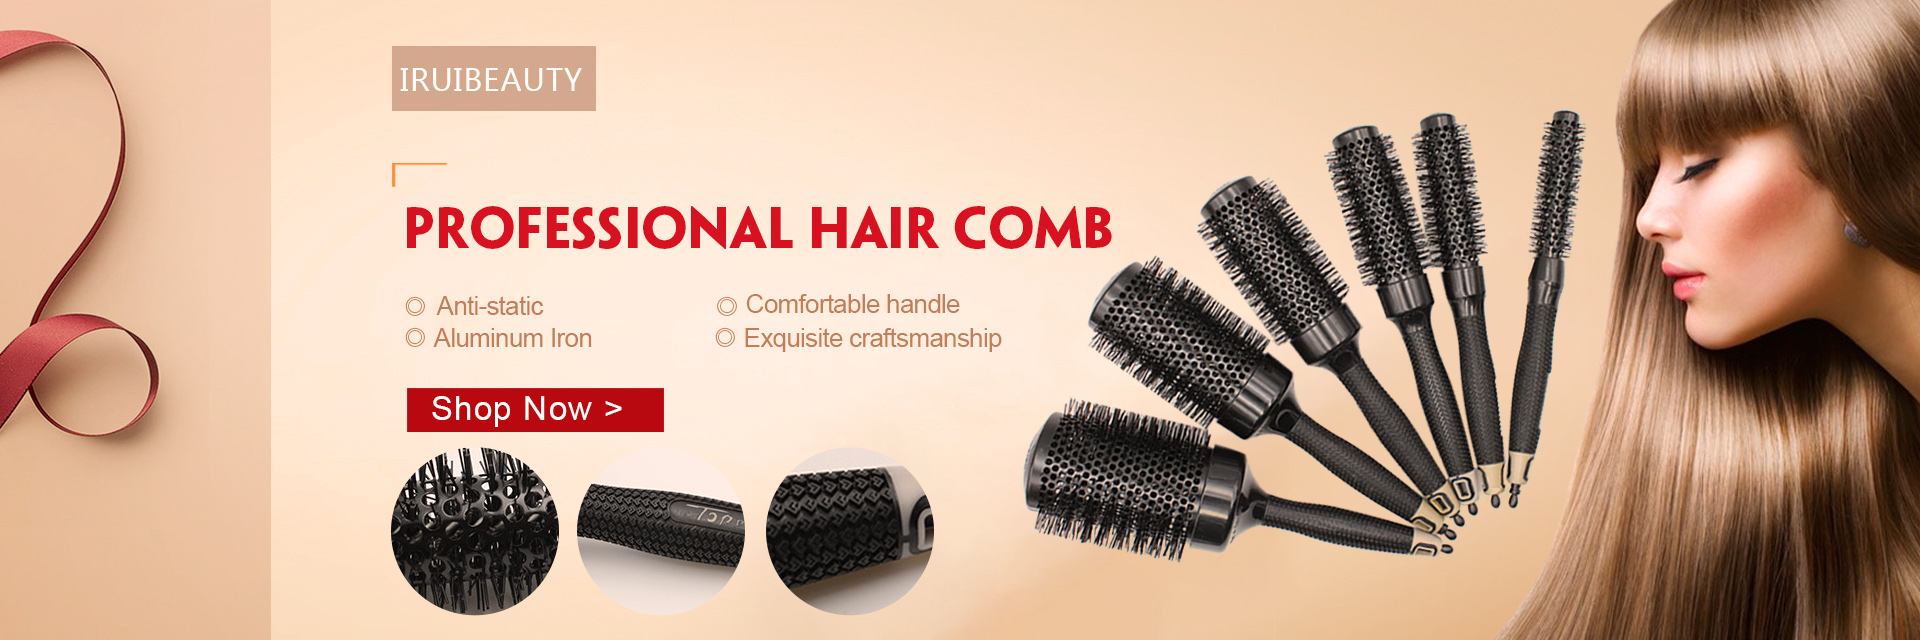 Professional Anti-static aluminum iron round hair brushes